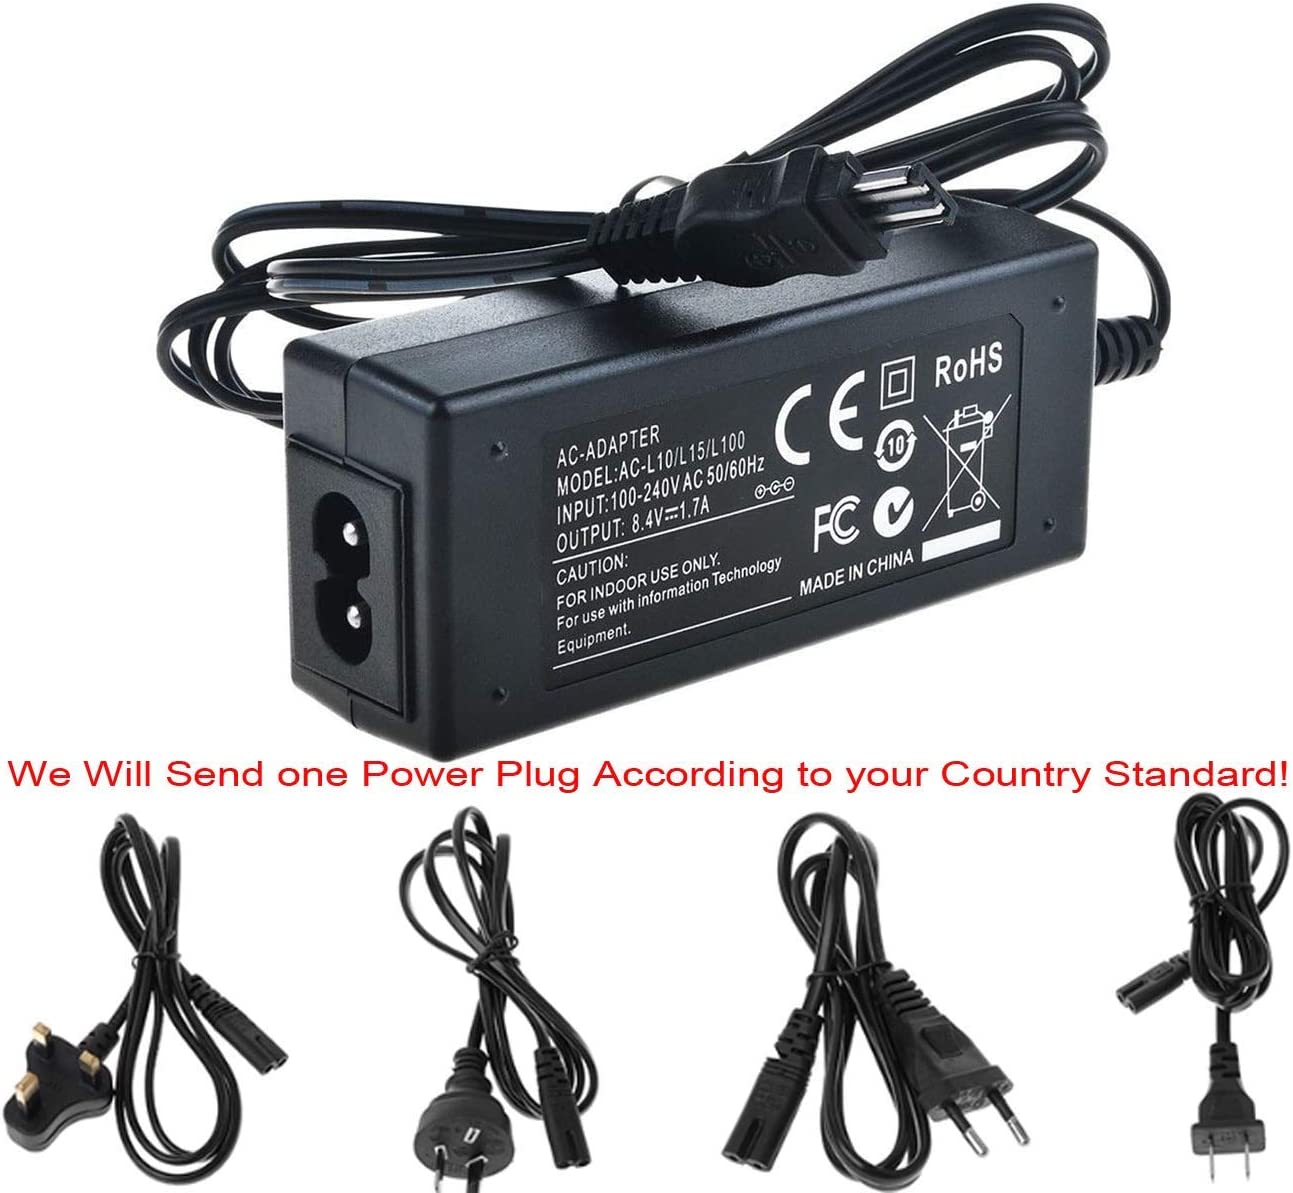 DCR-PC104 DCR-PC105 MiniDV Handycam Camcorder AC Power Adapter Charger for Sony DCR-PC101 DCR-PC103